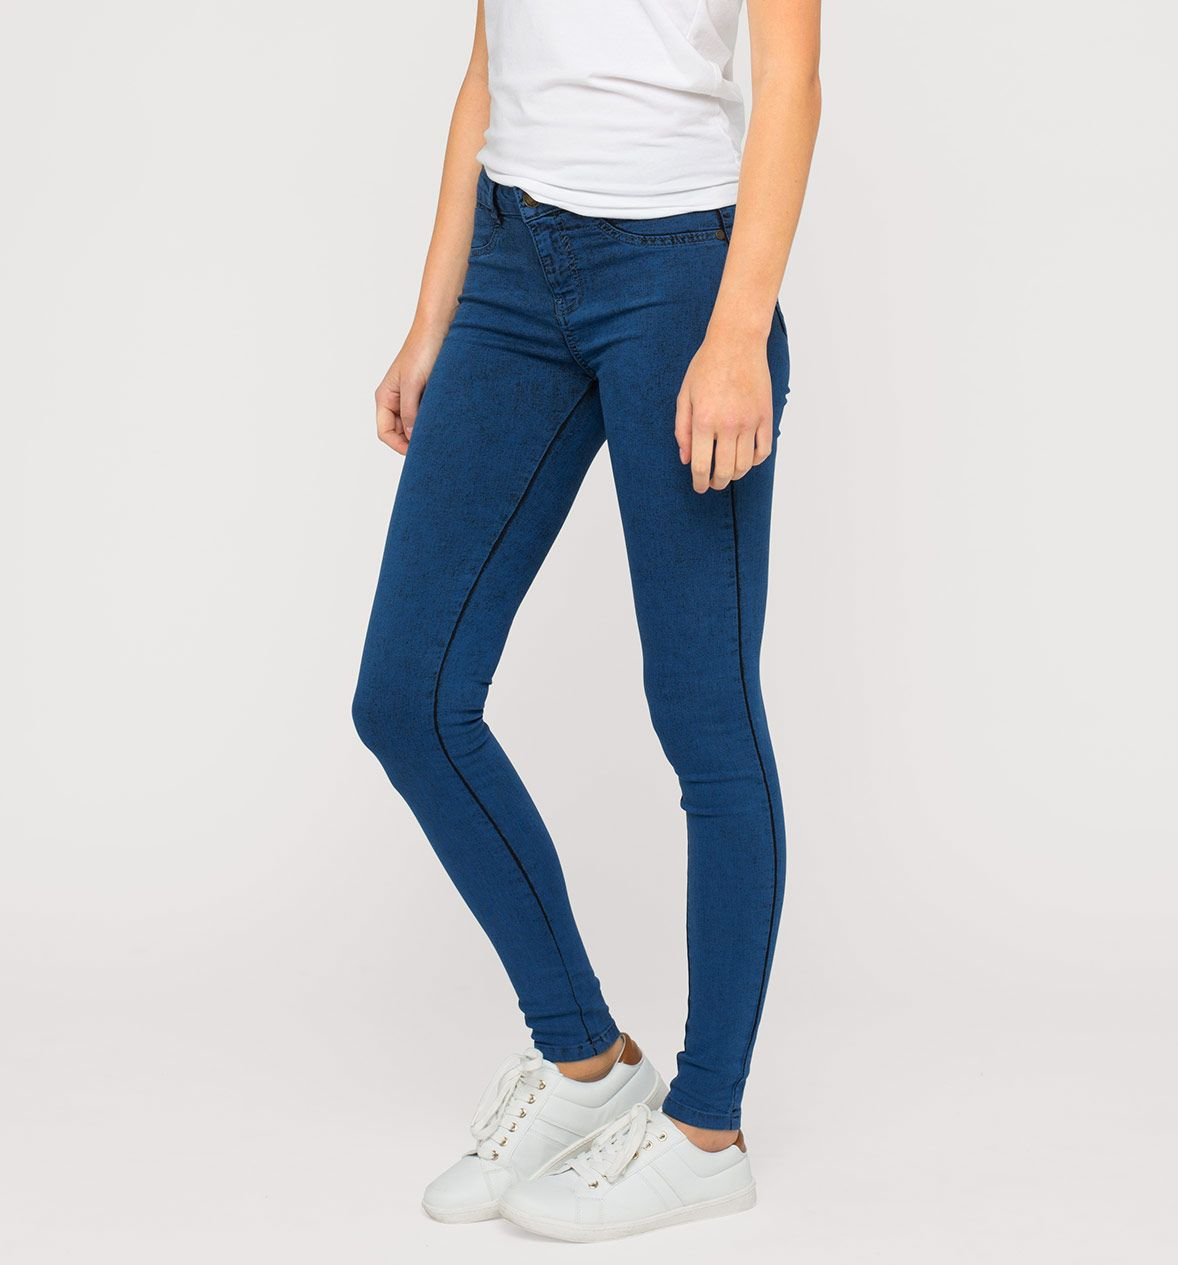 Jeggings en vaqueros - azul